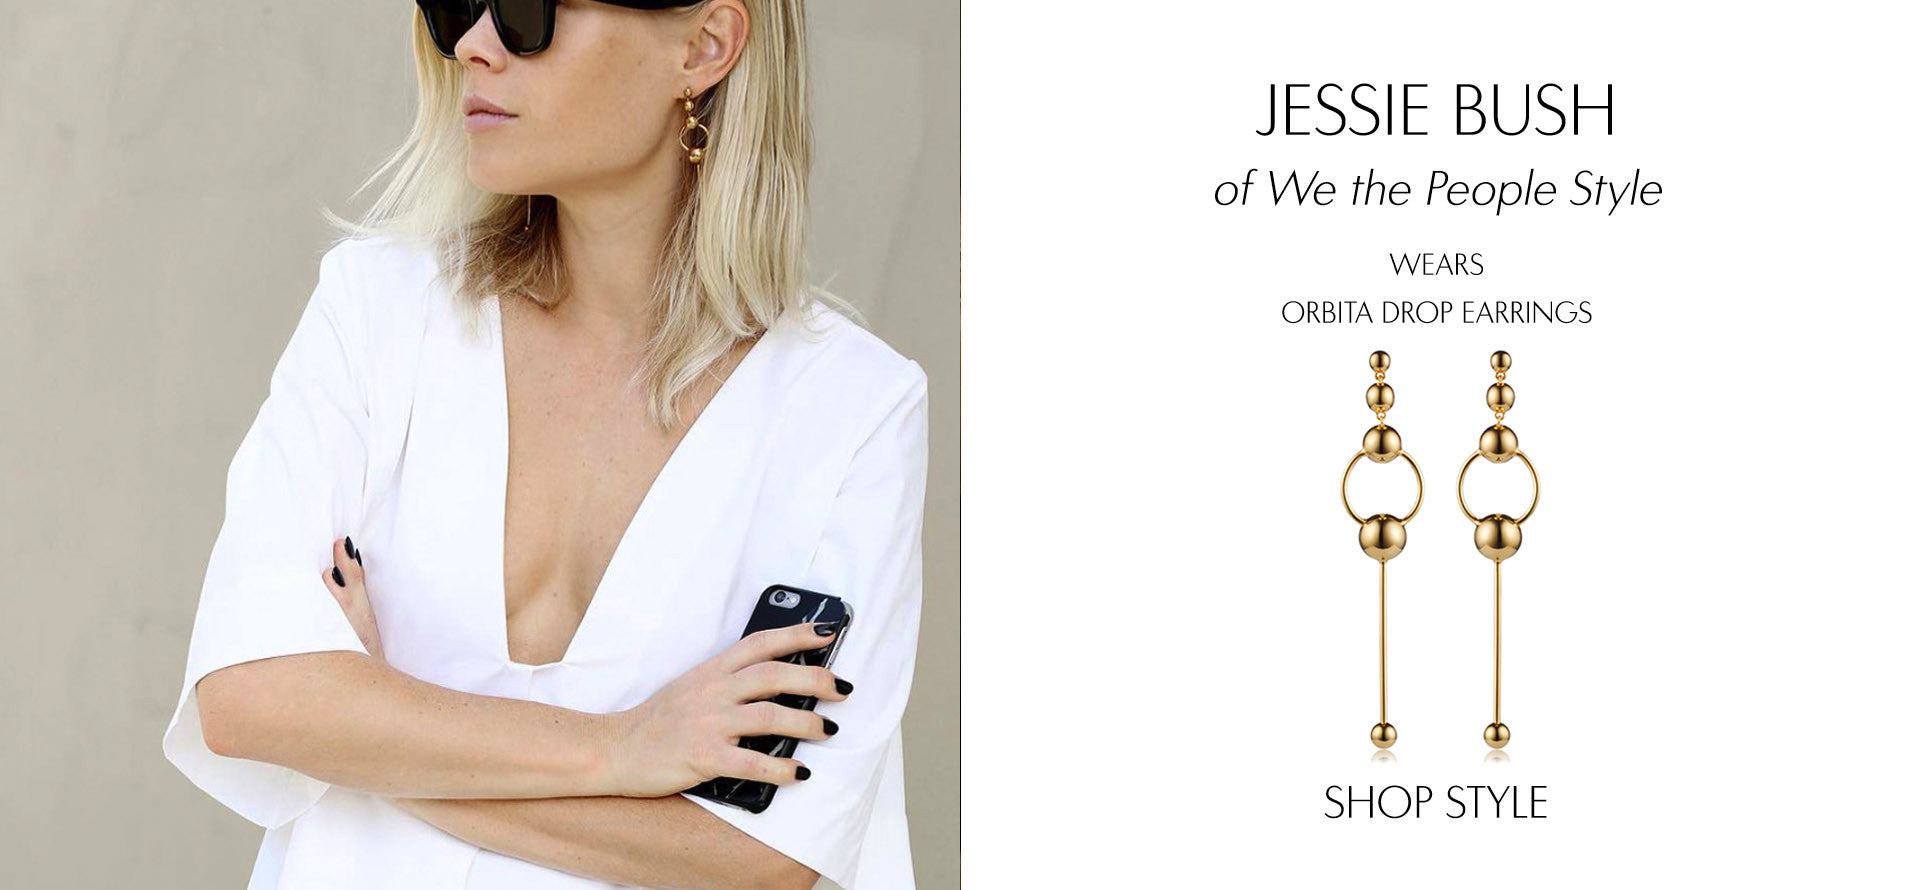 Influencer Jessie Bush wears Sarina Suriano Orbita earrings in 18K gold plating from the Sphera collection